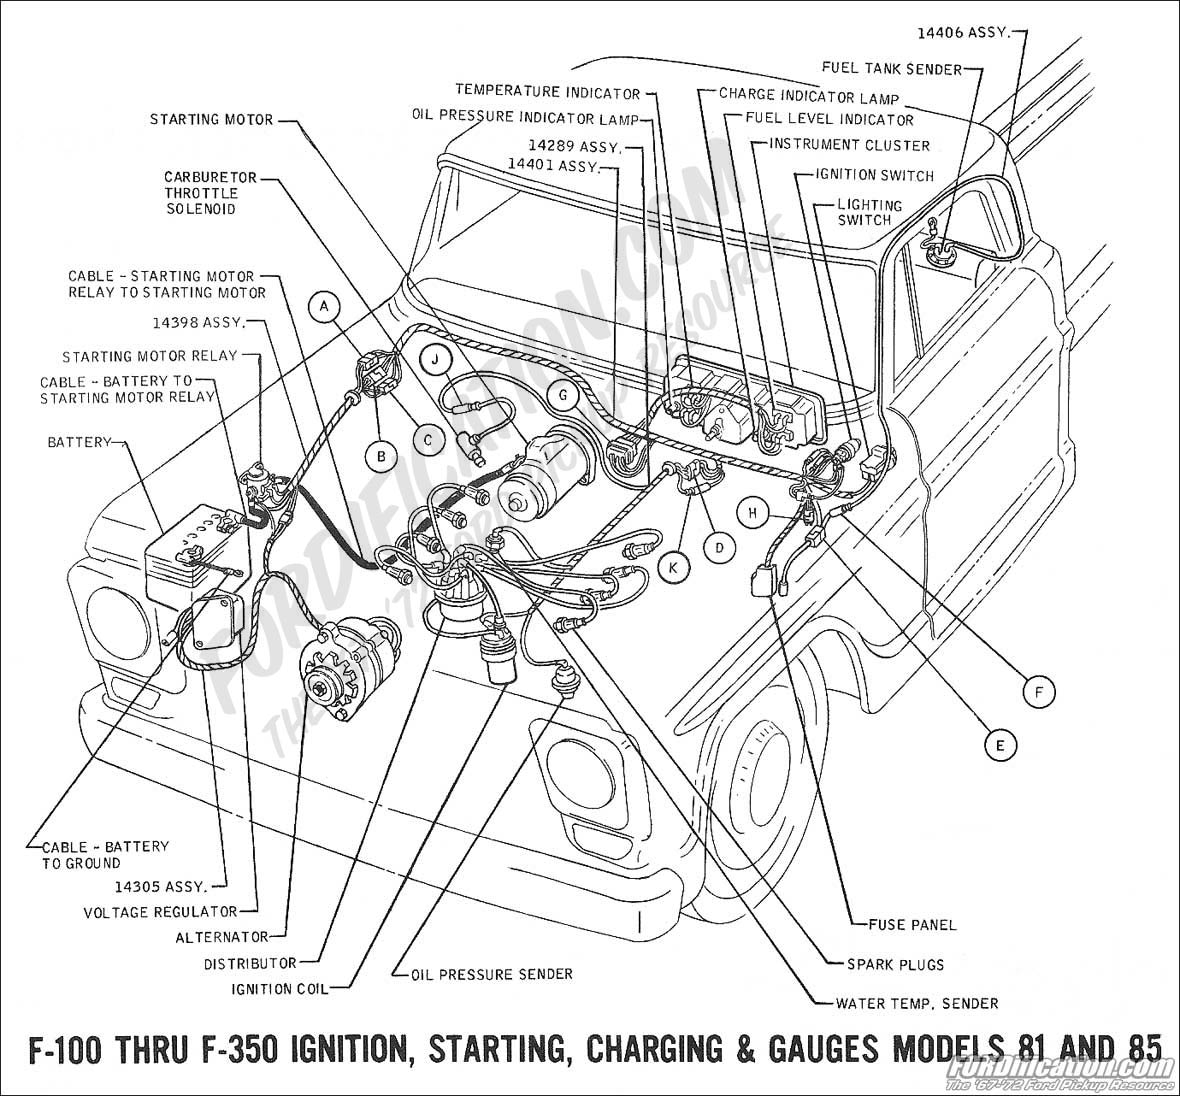 68 Gto Wiring Lights Real Diagram Pontiac Dash Ford Truck Technical Drawings And Schematics Section H 1964 1966